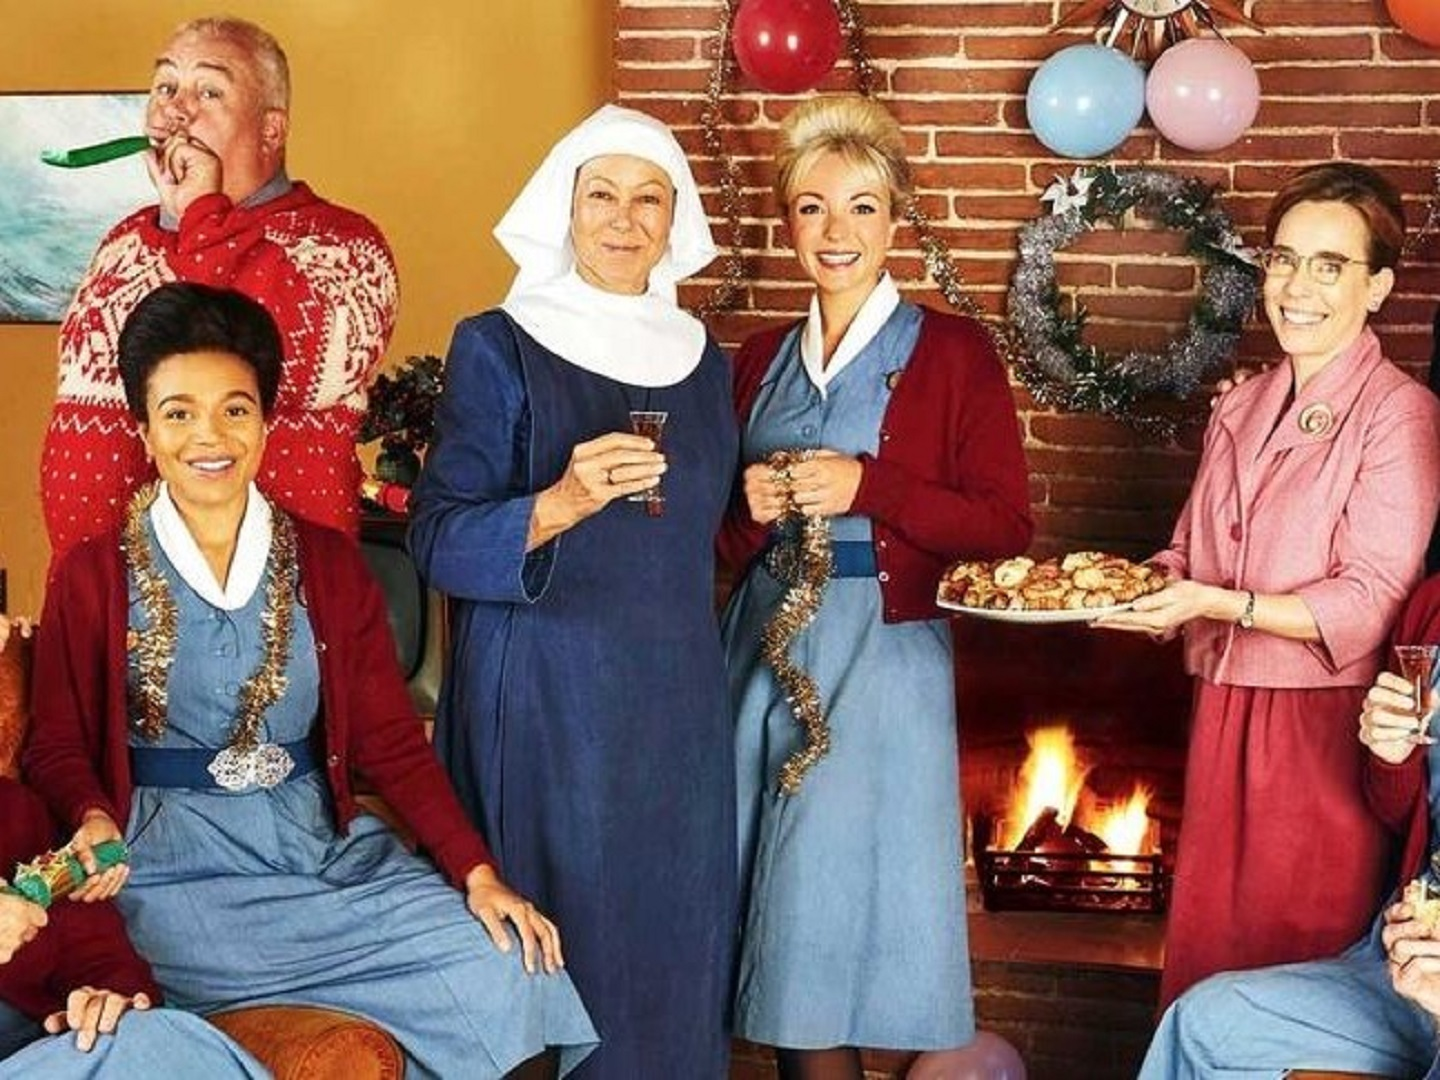 'Call the Midwife' Season 8 Is Set to Premiere on PBS This Spring